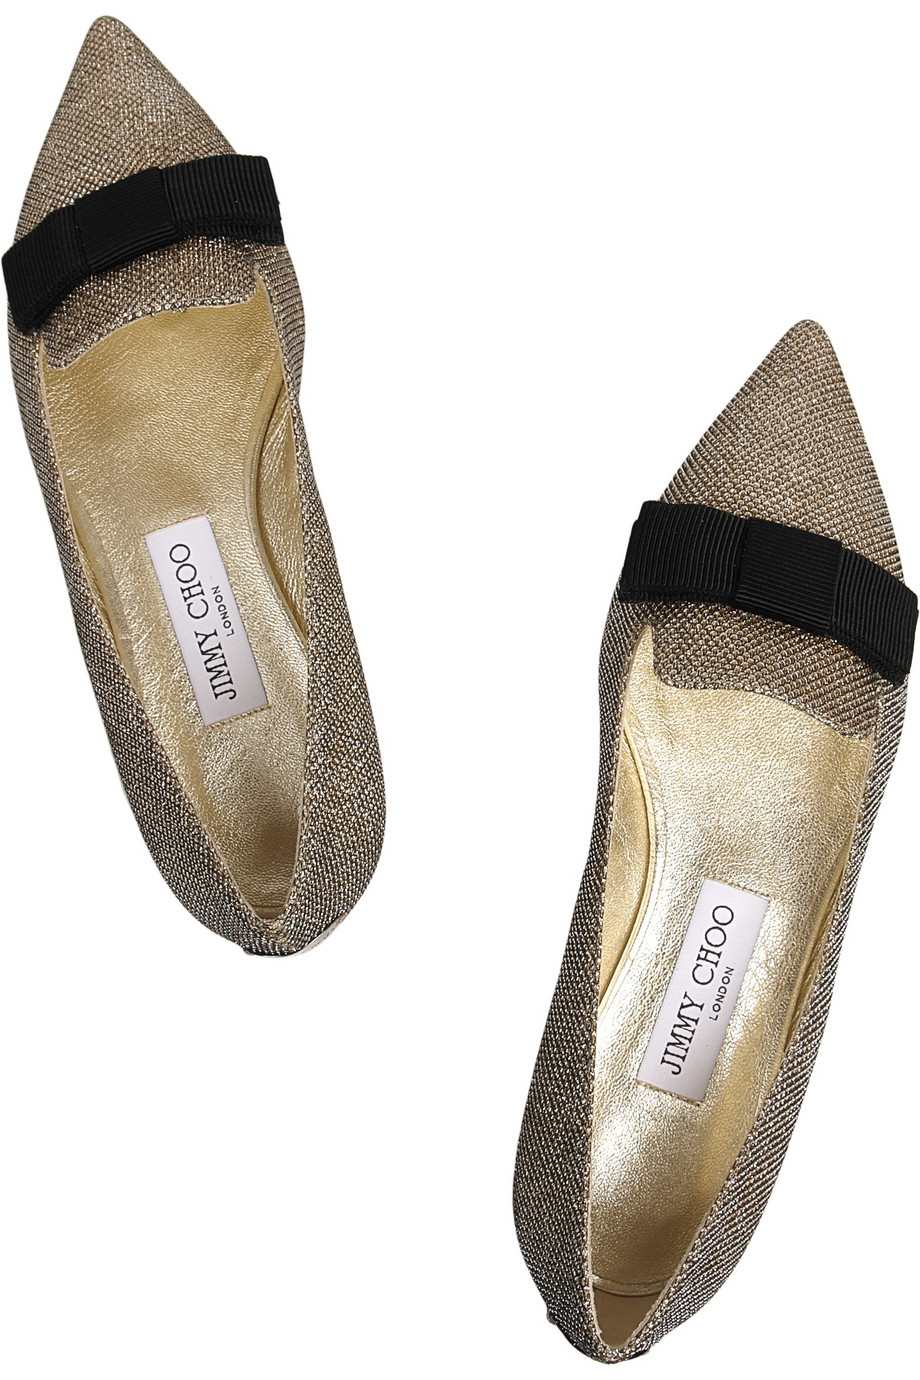 Jimmy Choo Gold-gala-gold lame point toe flats